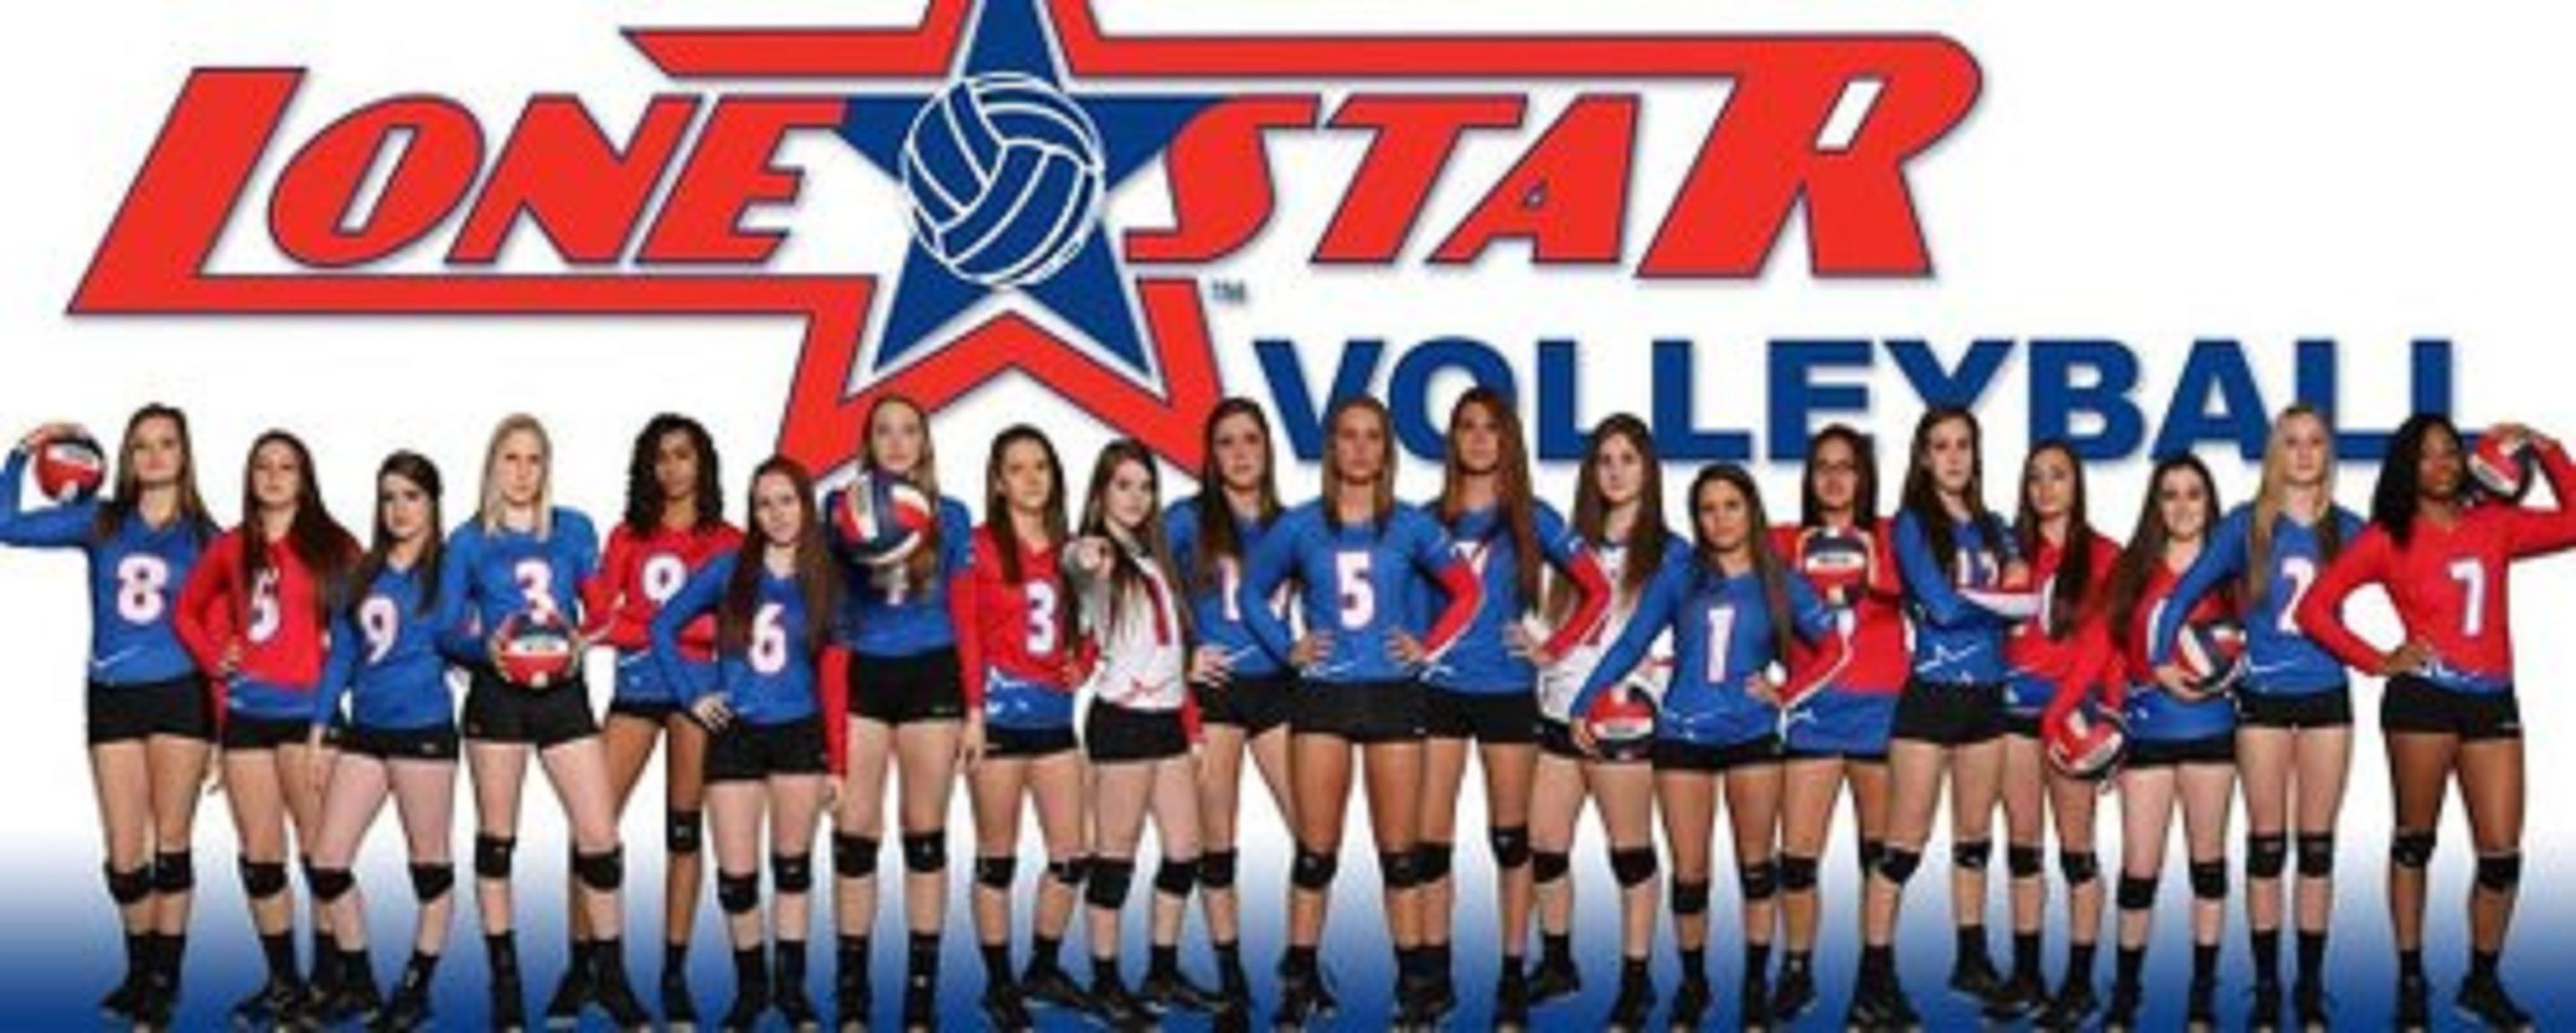 Lonestar Volleyball 15 S And 16 S Volleyball Pictures Lone Star Volleyball